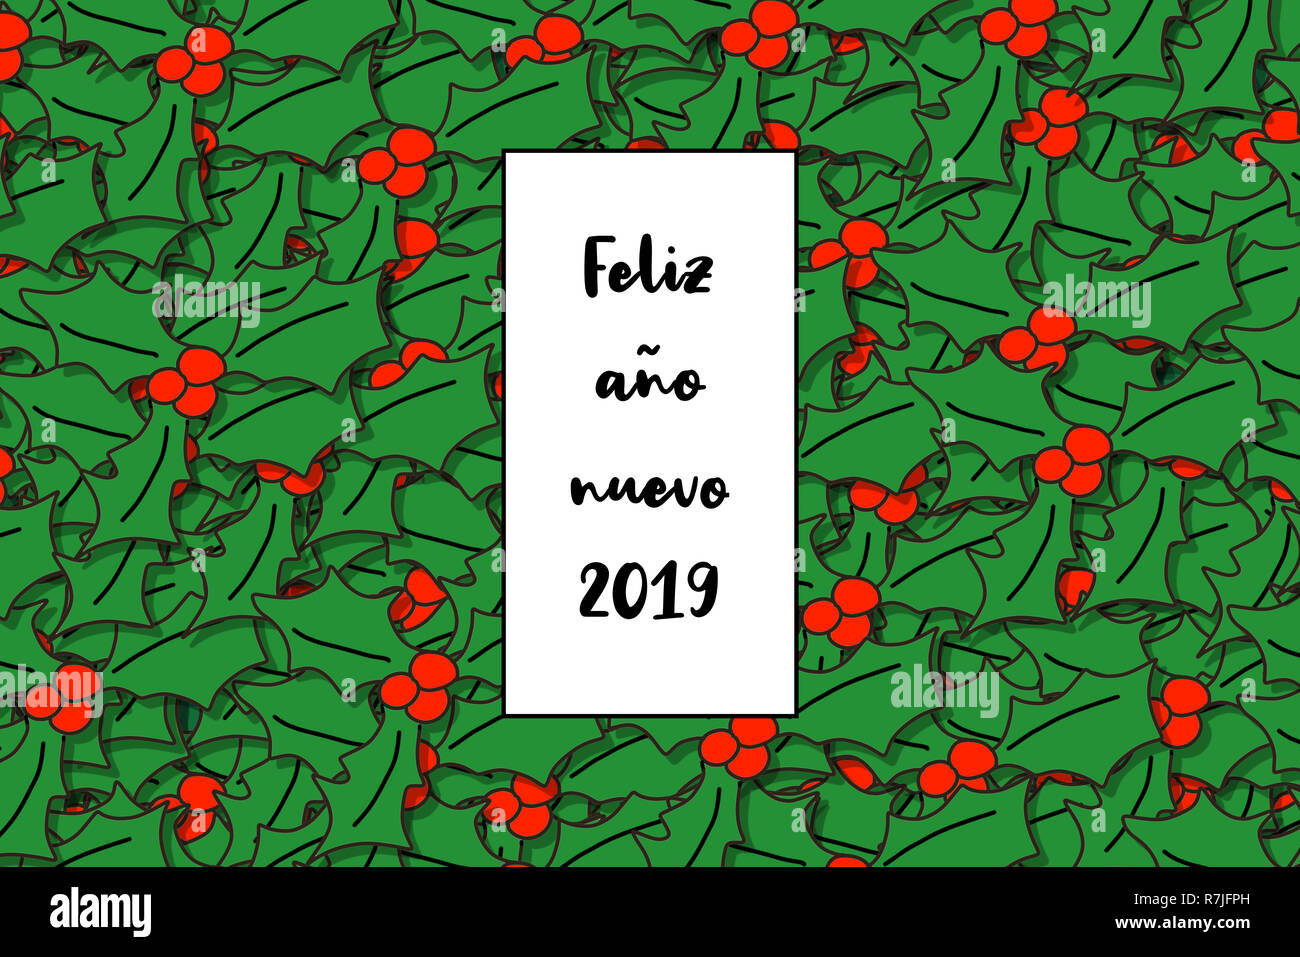 Feliz año nuevo 2019 card (Happy New Year in spanish) with holly leaves as a background - Stock Image